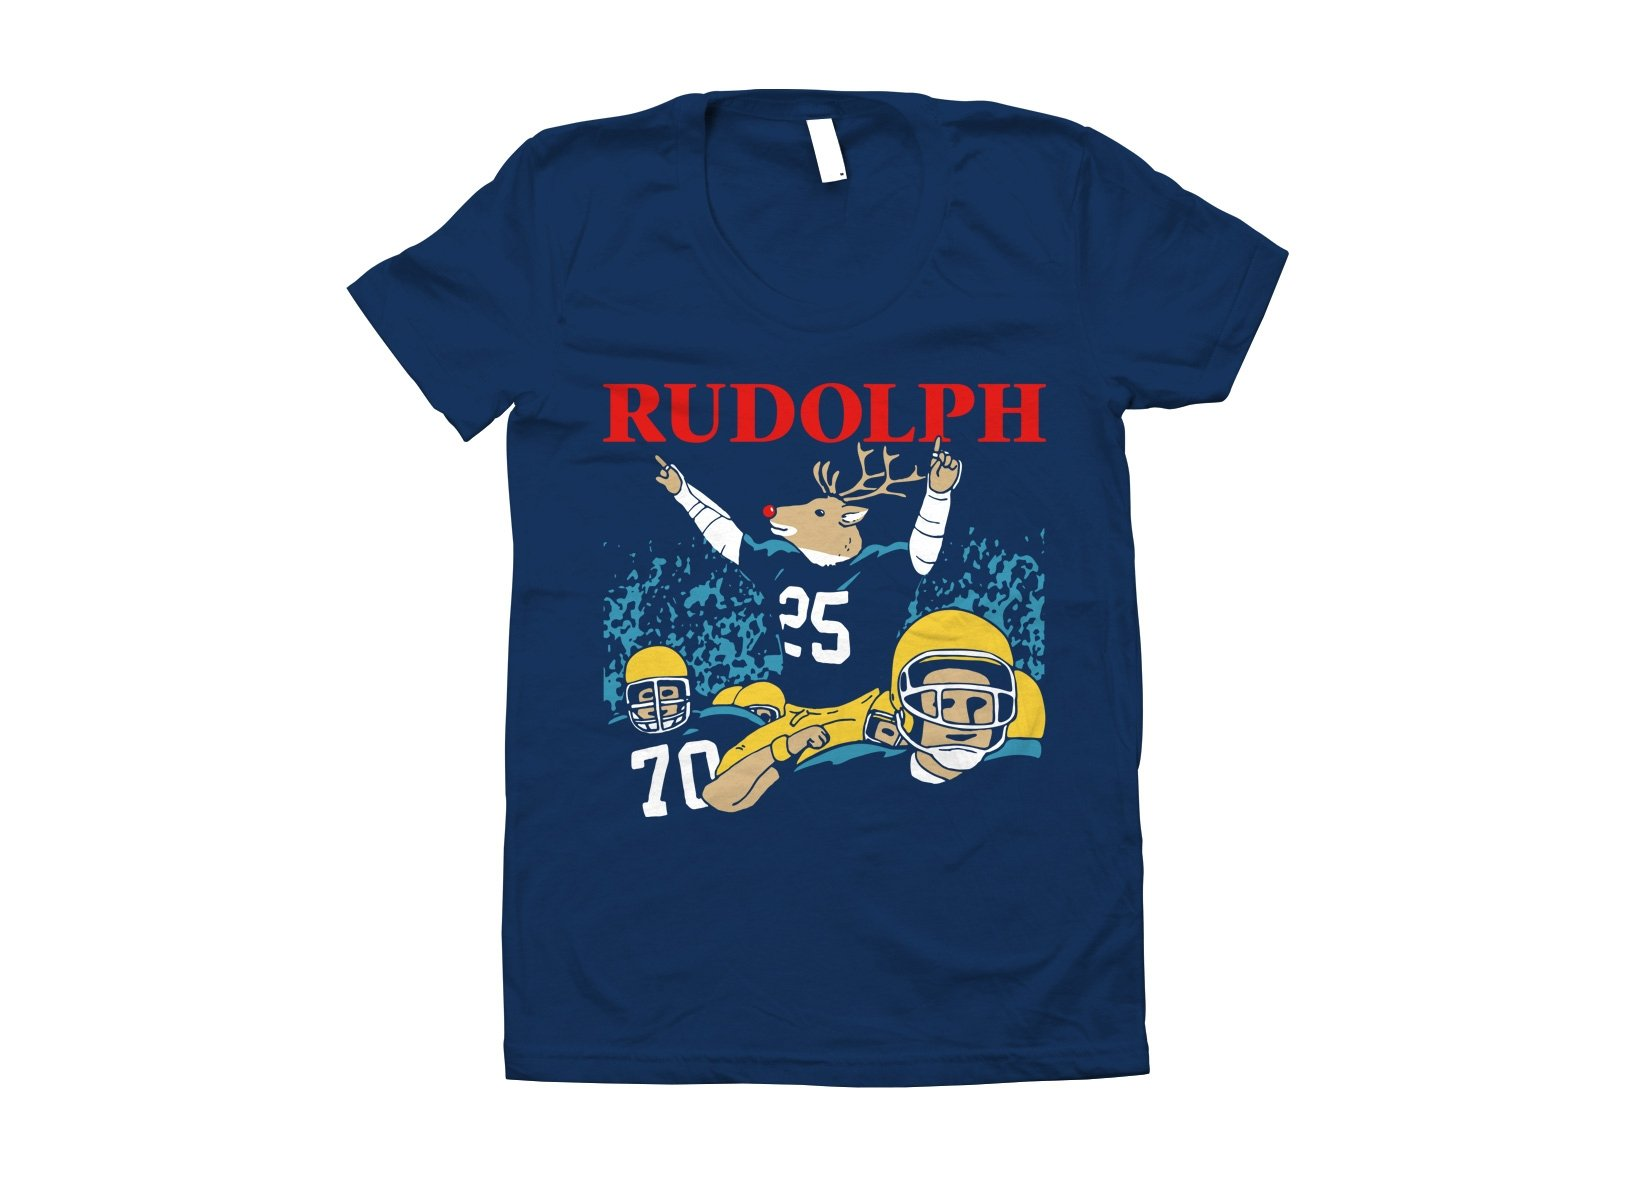 Rudolph on Juniors T-Shirt